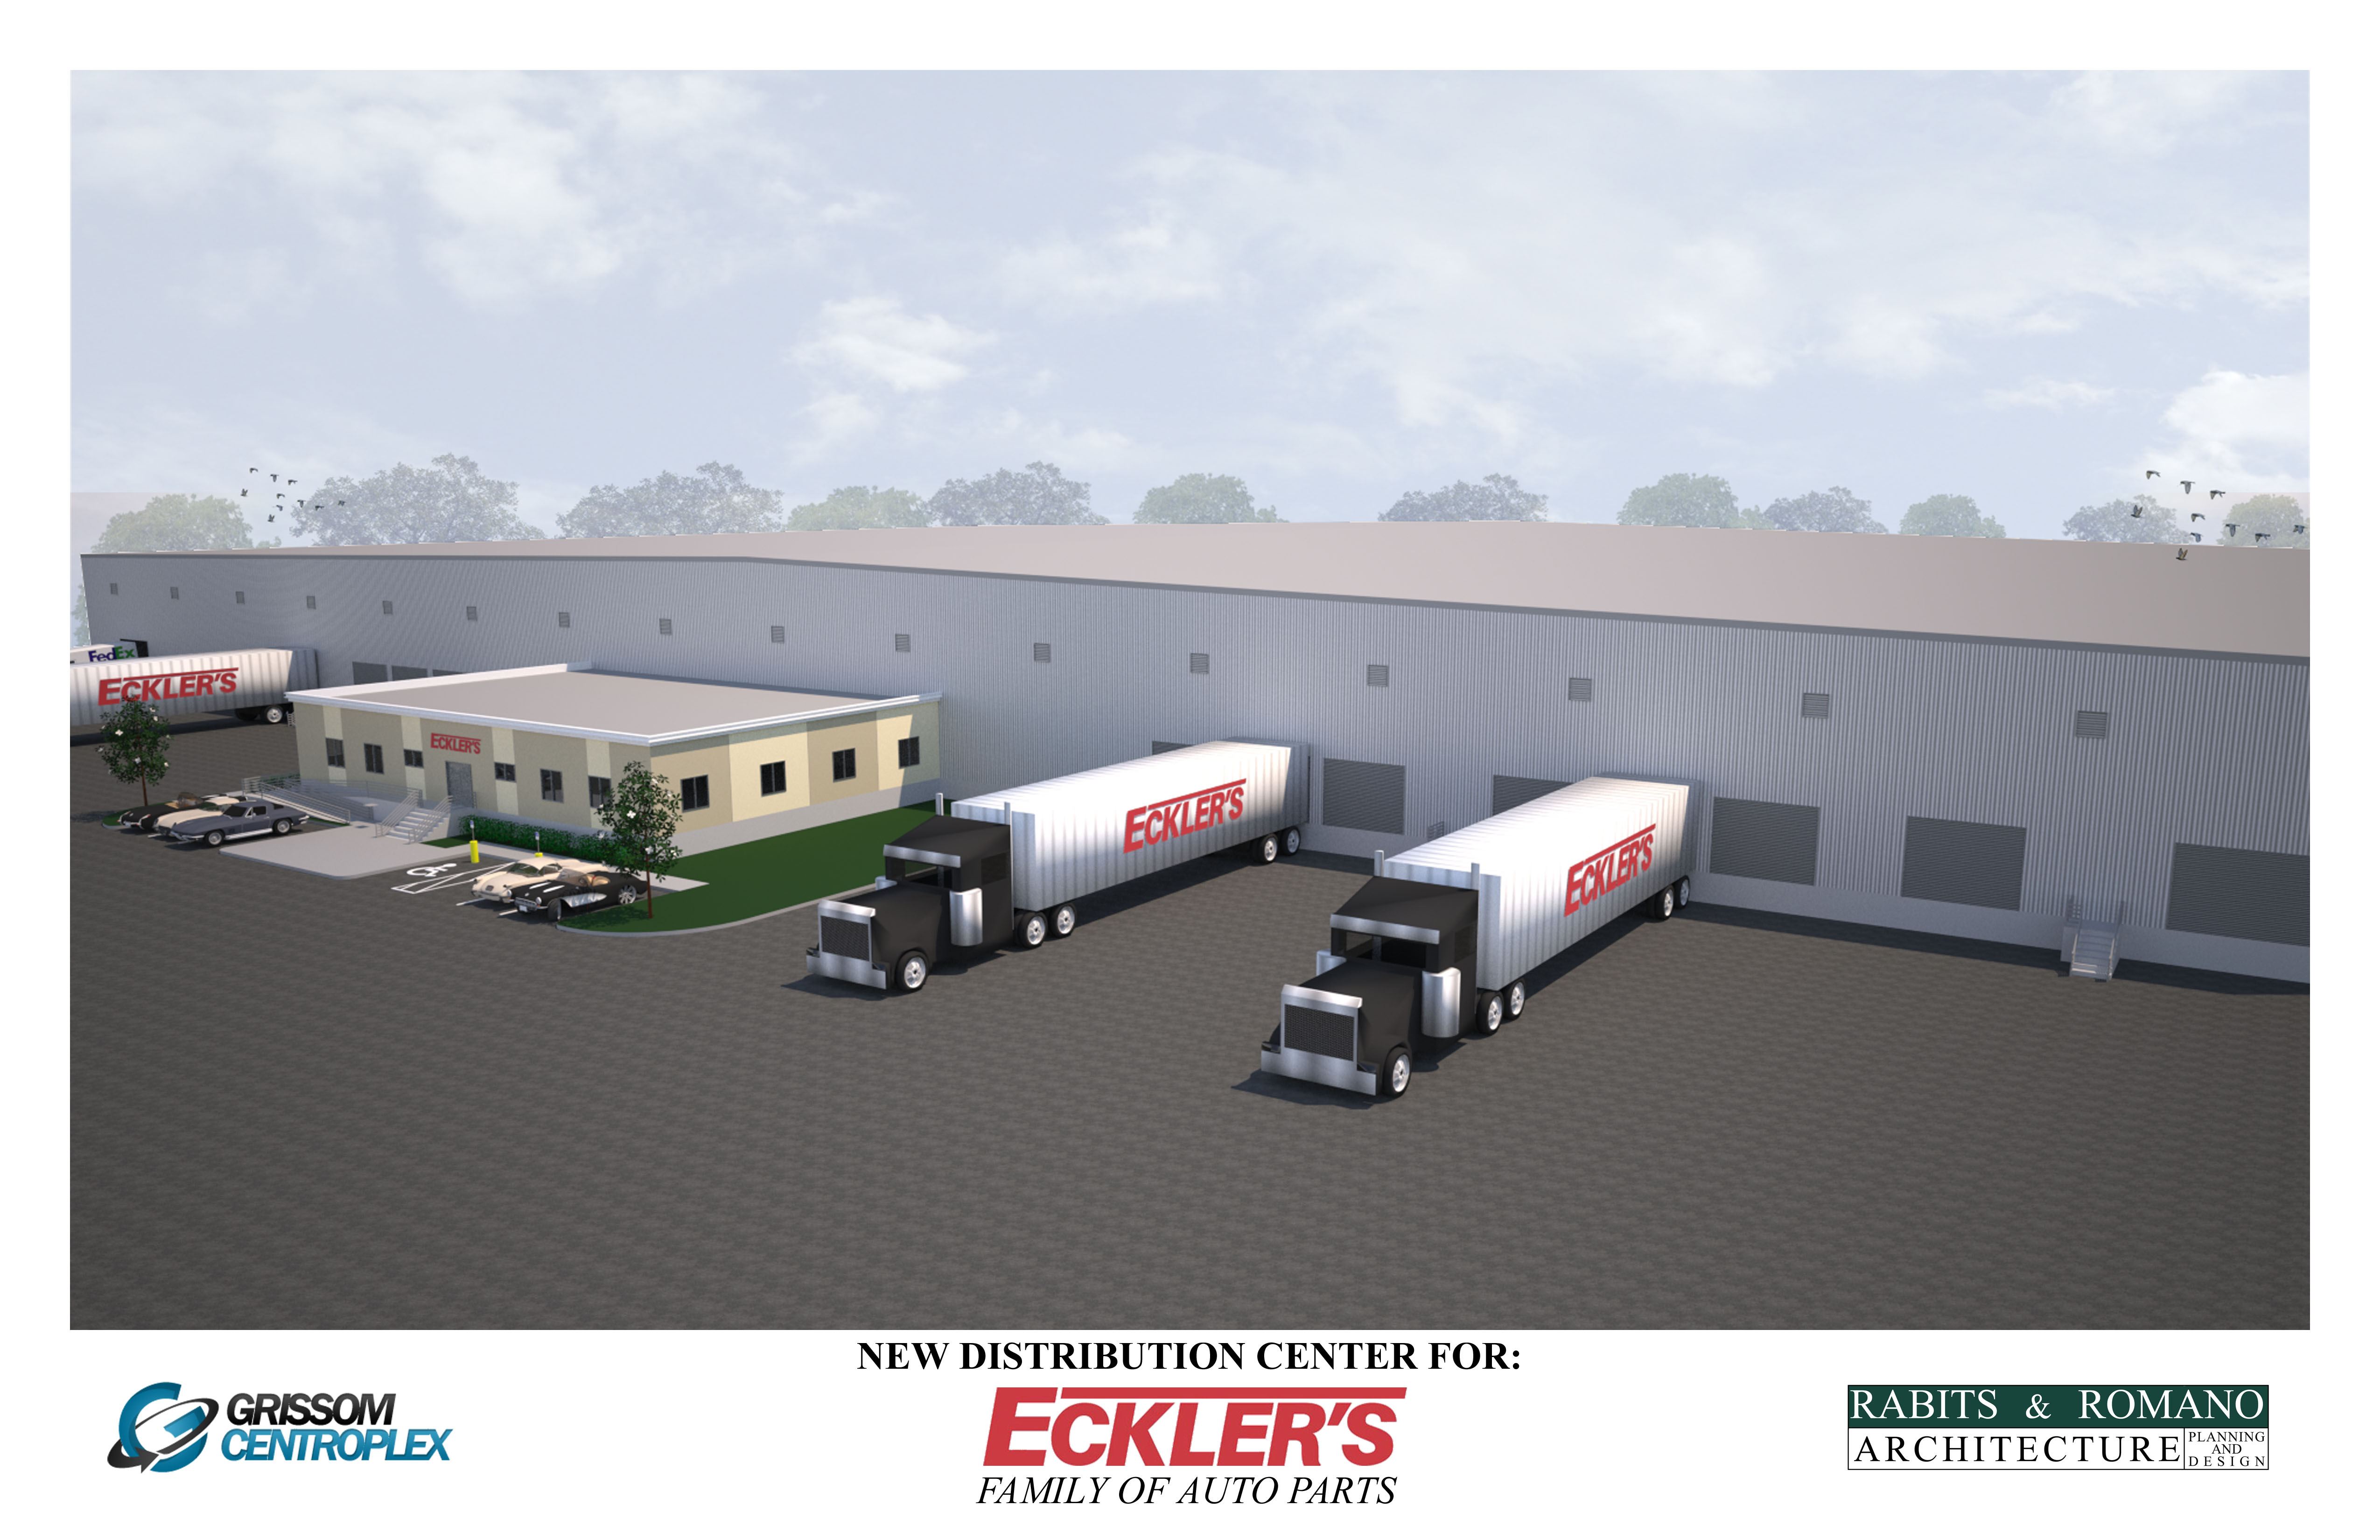 Ecklers Automotive: Eckler's Selects Rabits & Romano Architecture To Design